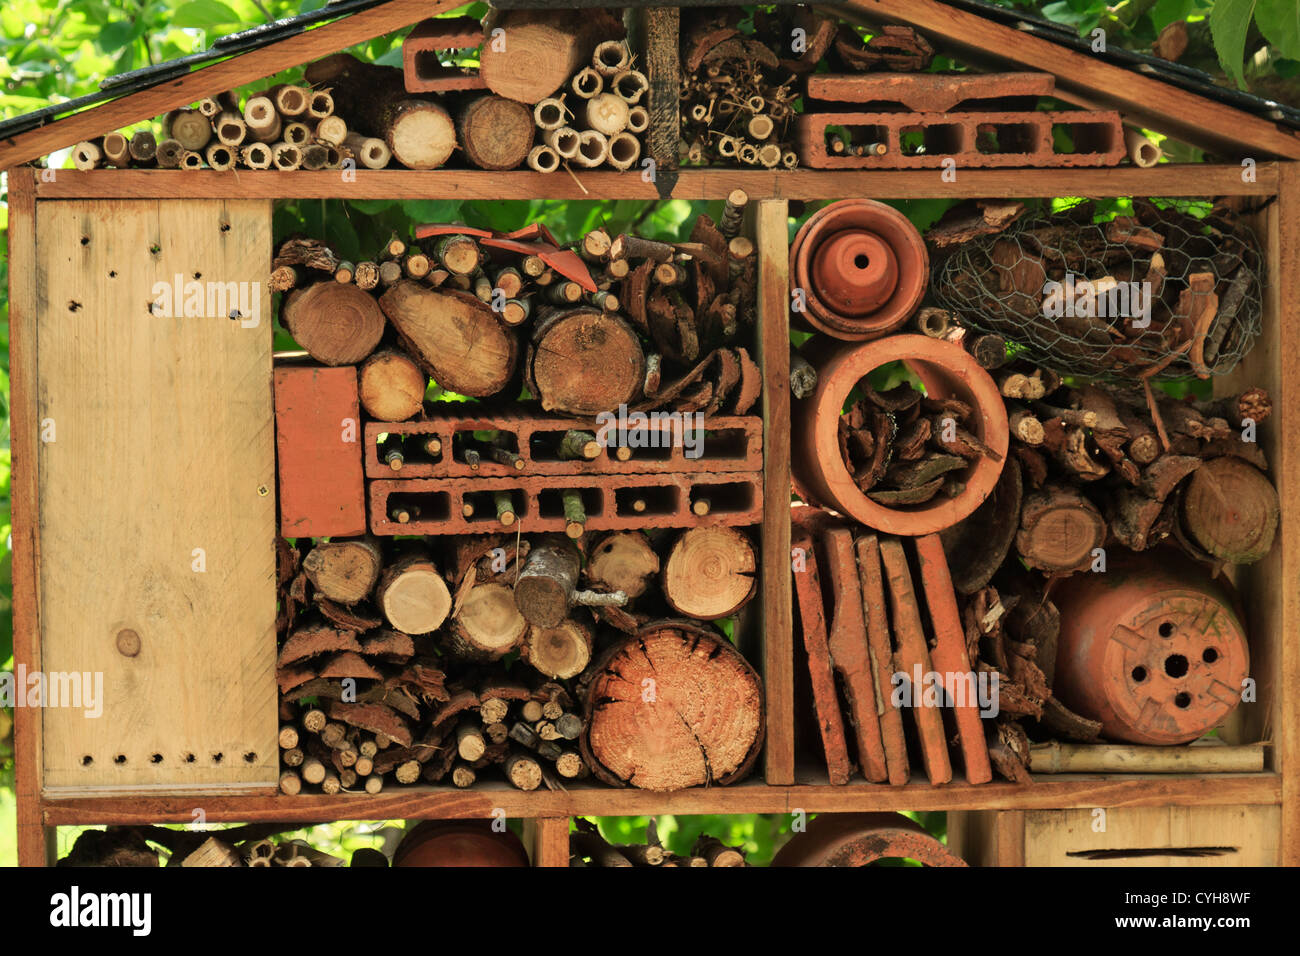 Insect hotel // Abri à insectes - Stock Image